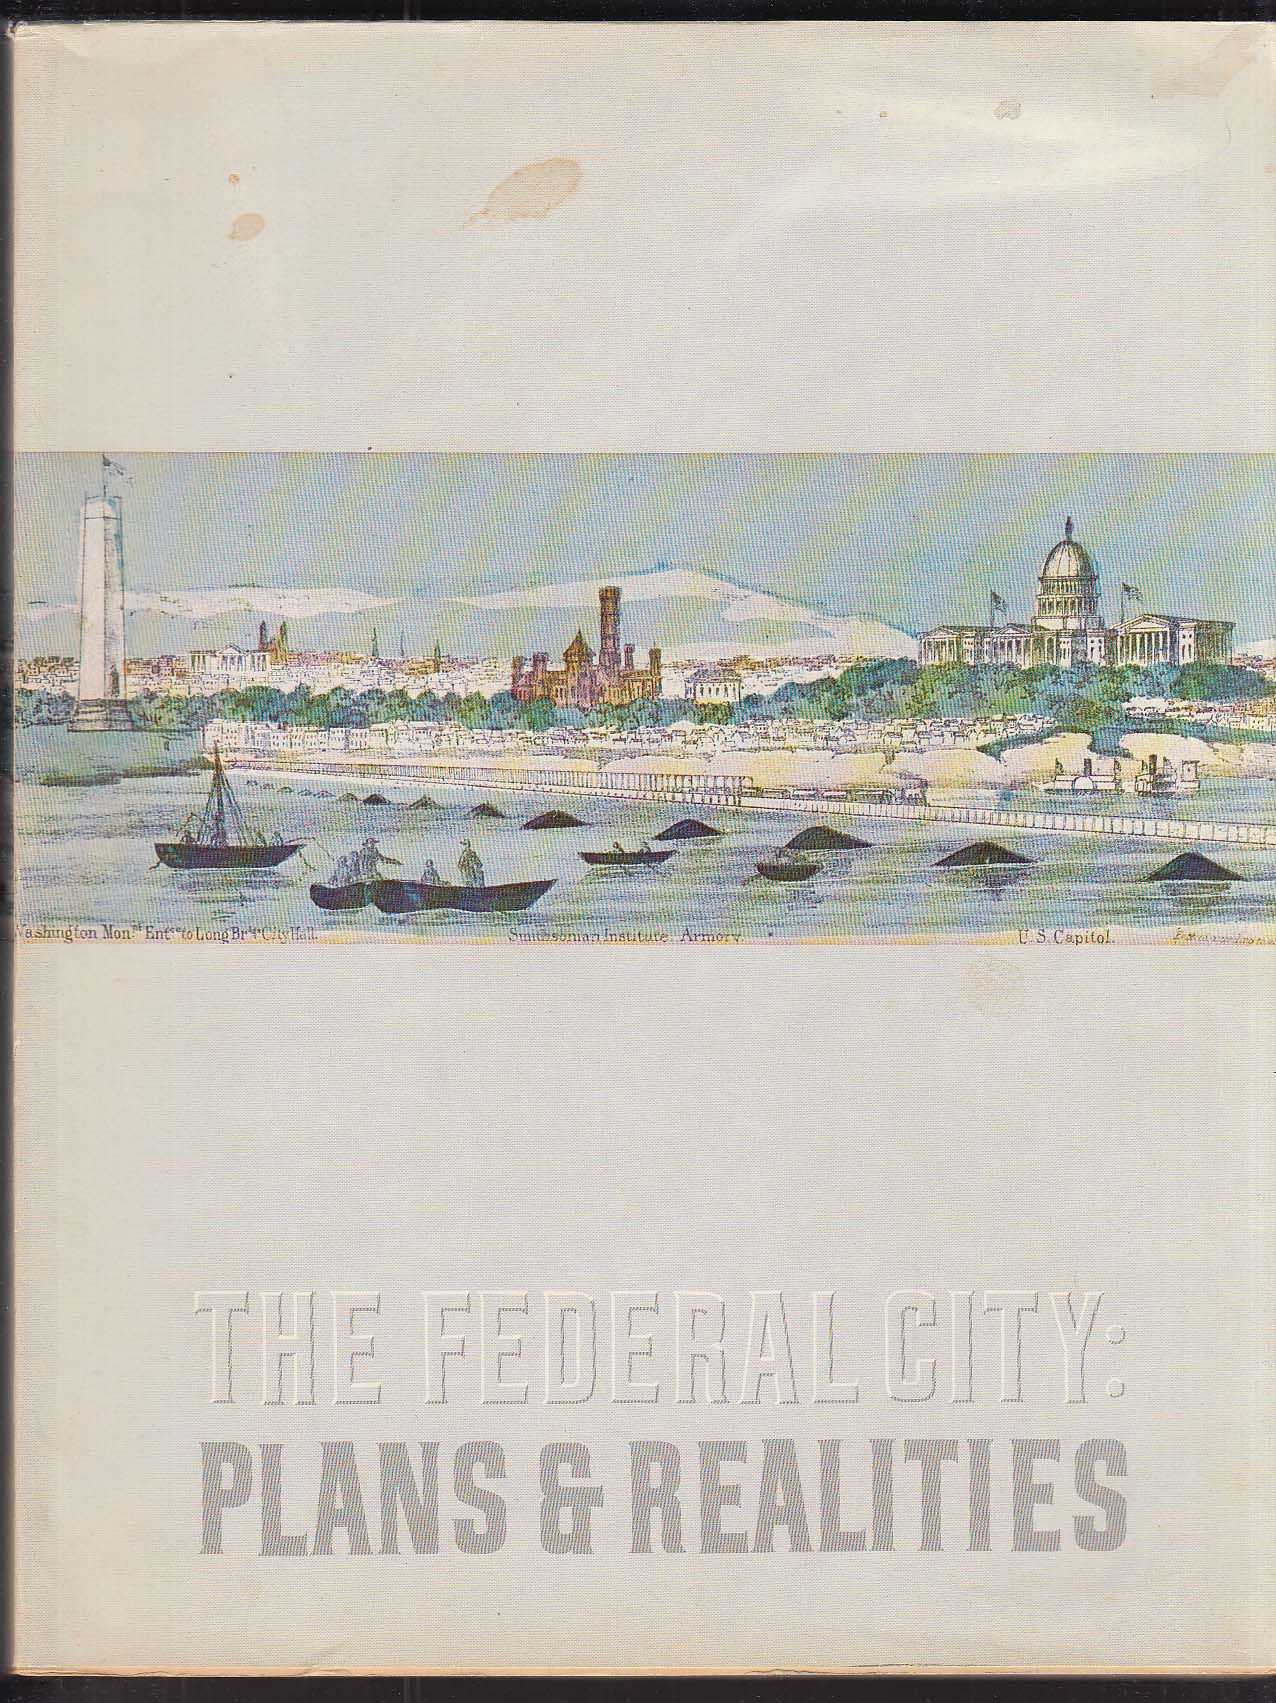 Image for The Federal City: Plans & Realities Exhibition Washington DC 1976